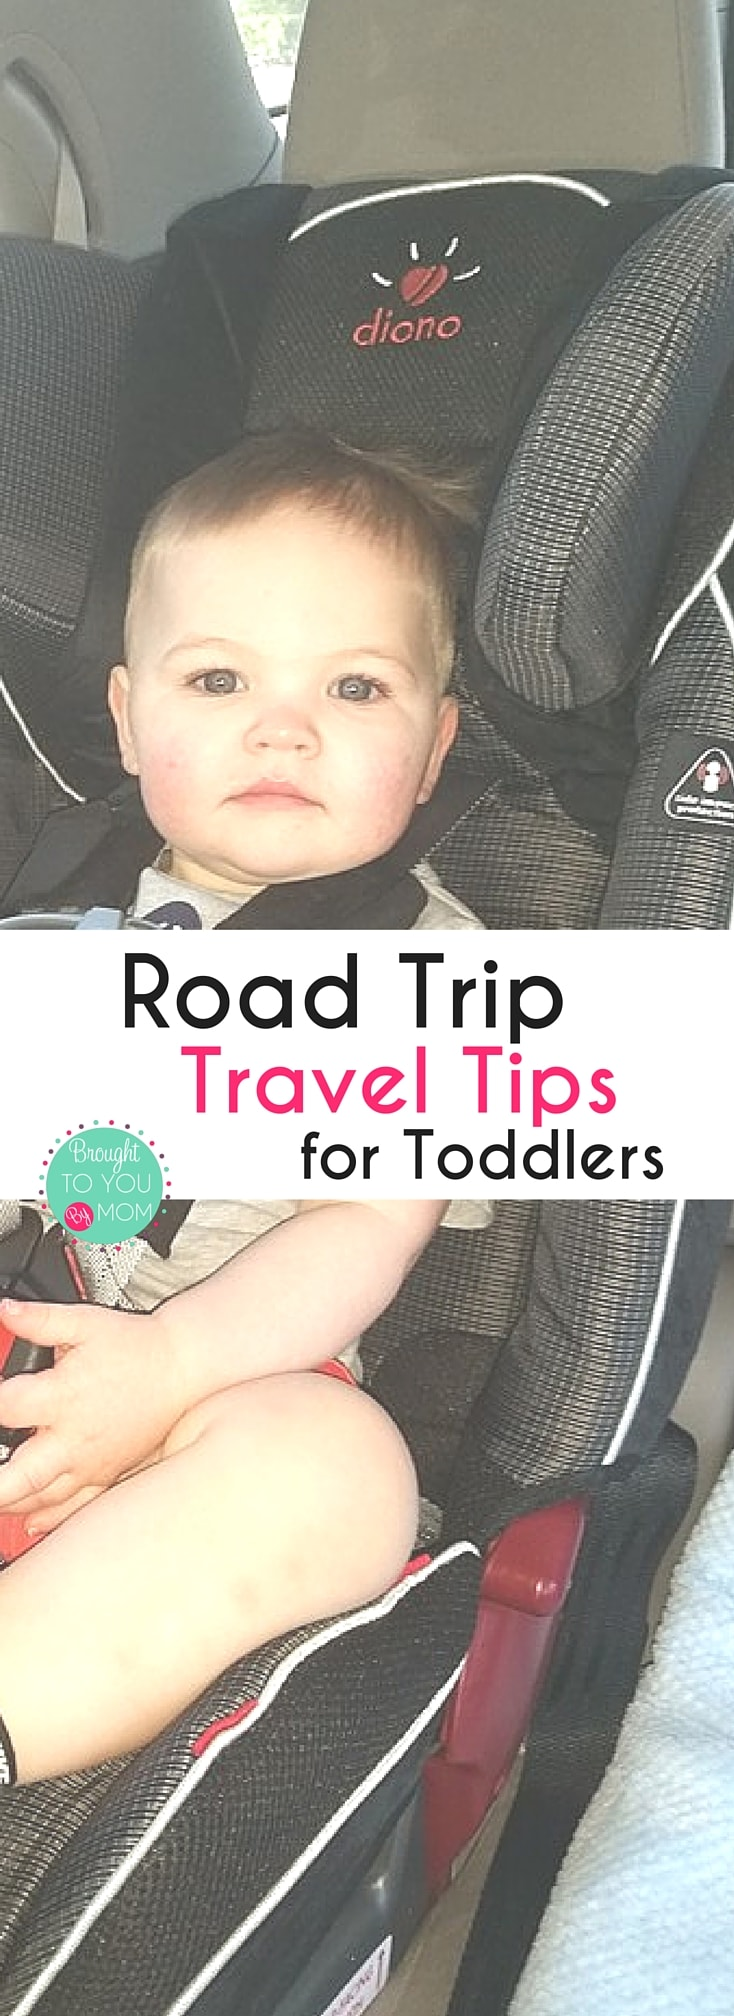 Traveling with kids can be exciting and overwhelming. Check out these Road Trip Travel Tips for Toddlers to make travel easier. Number 9 has saved us quite a few times.